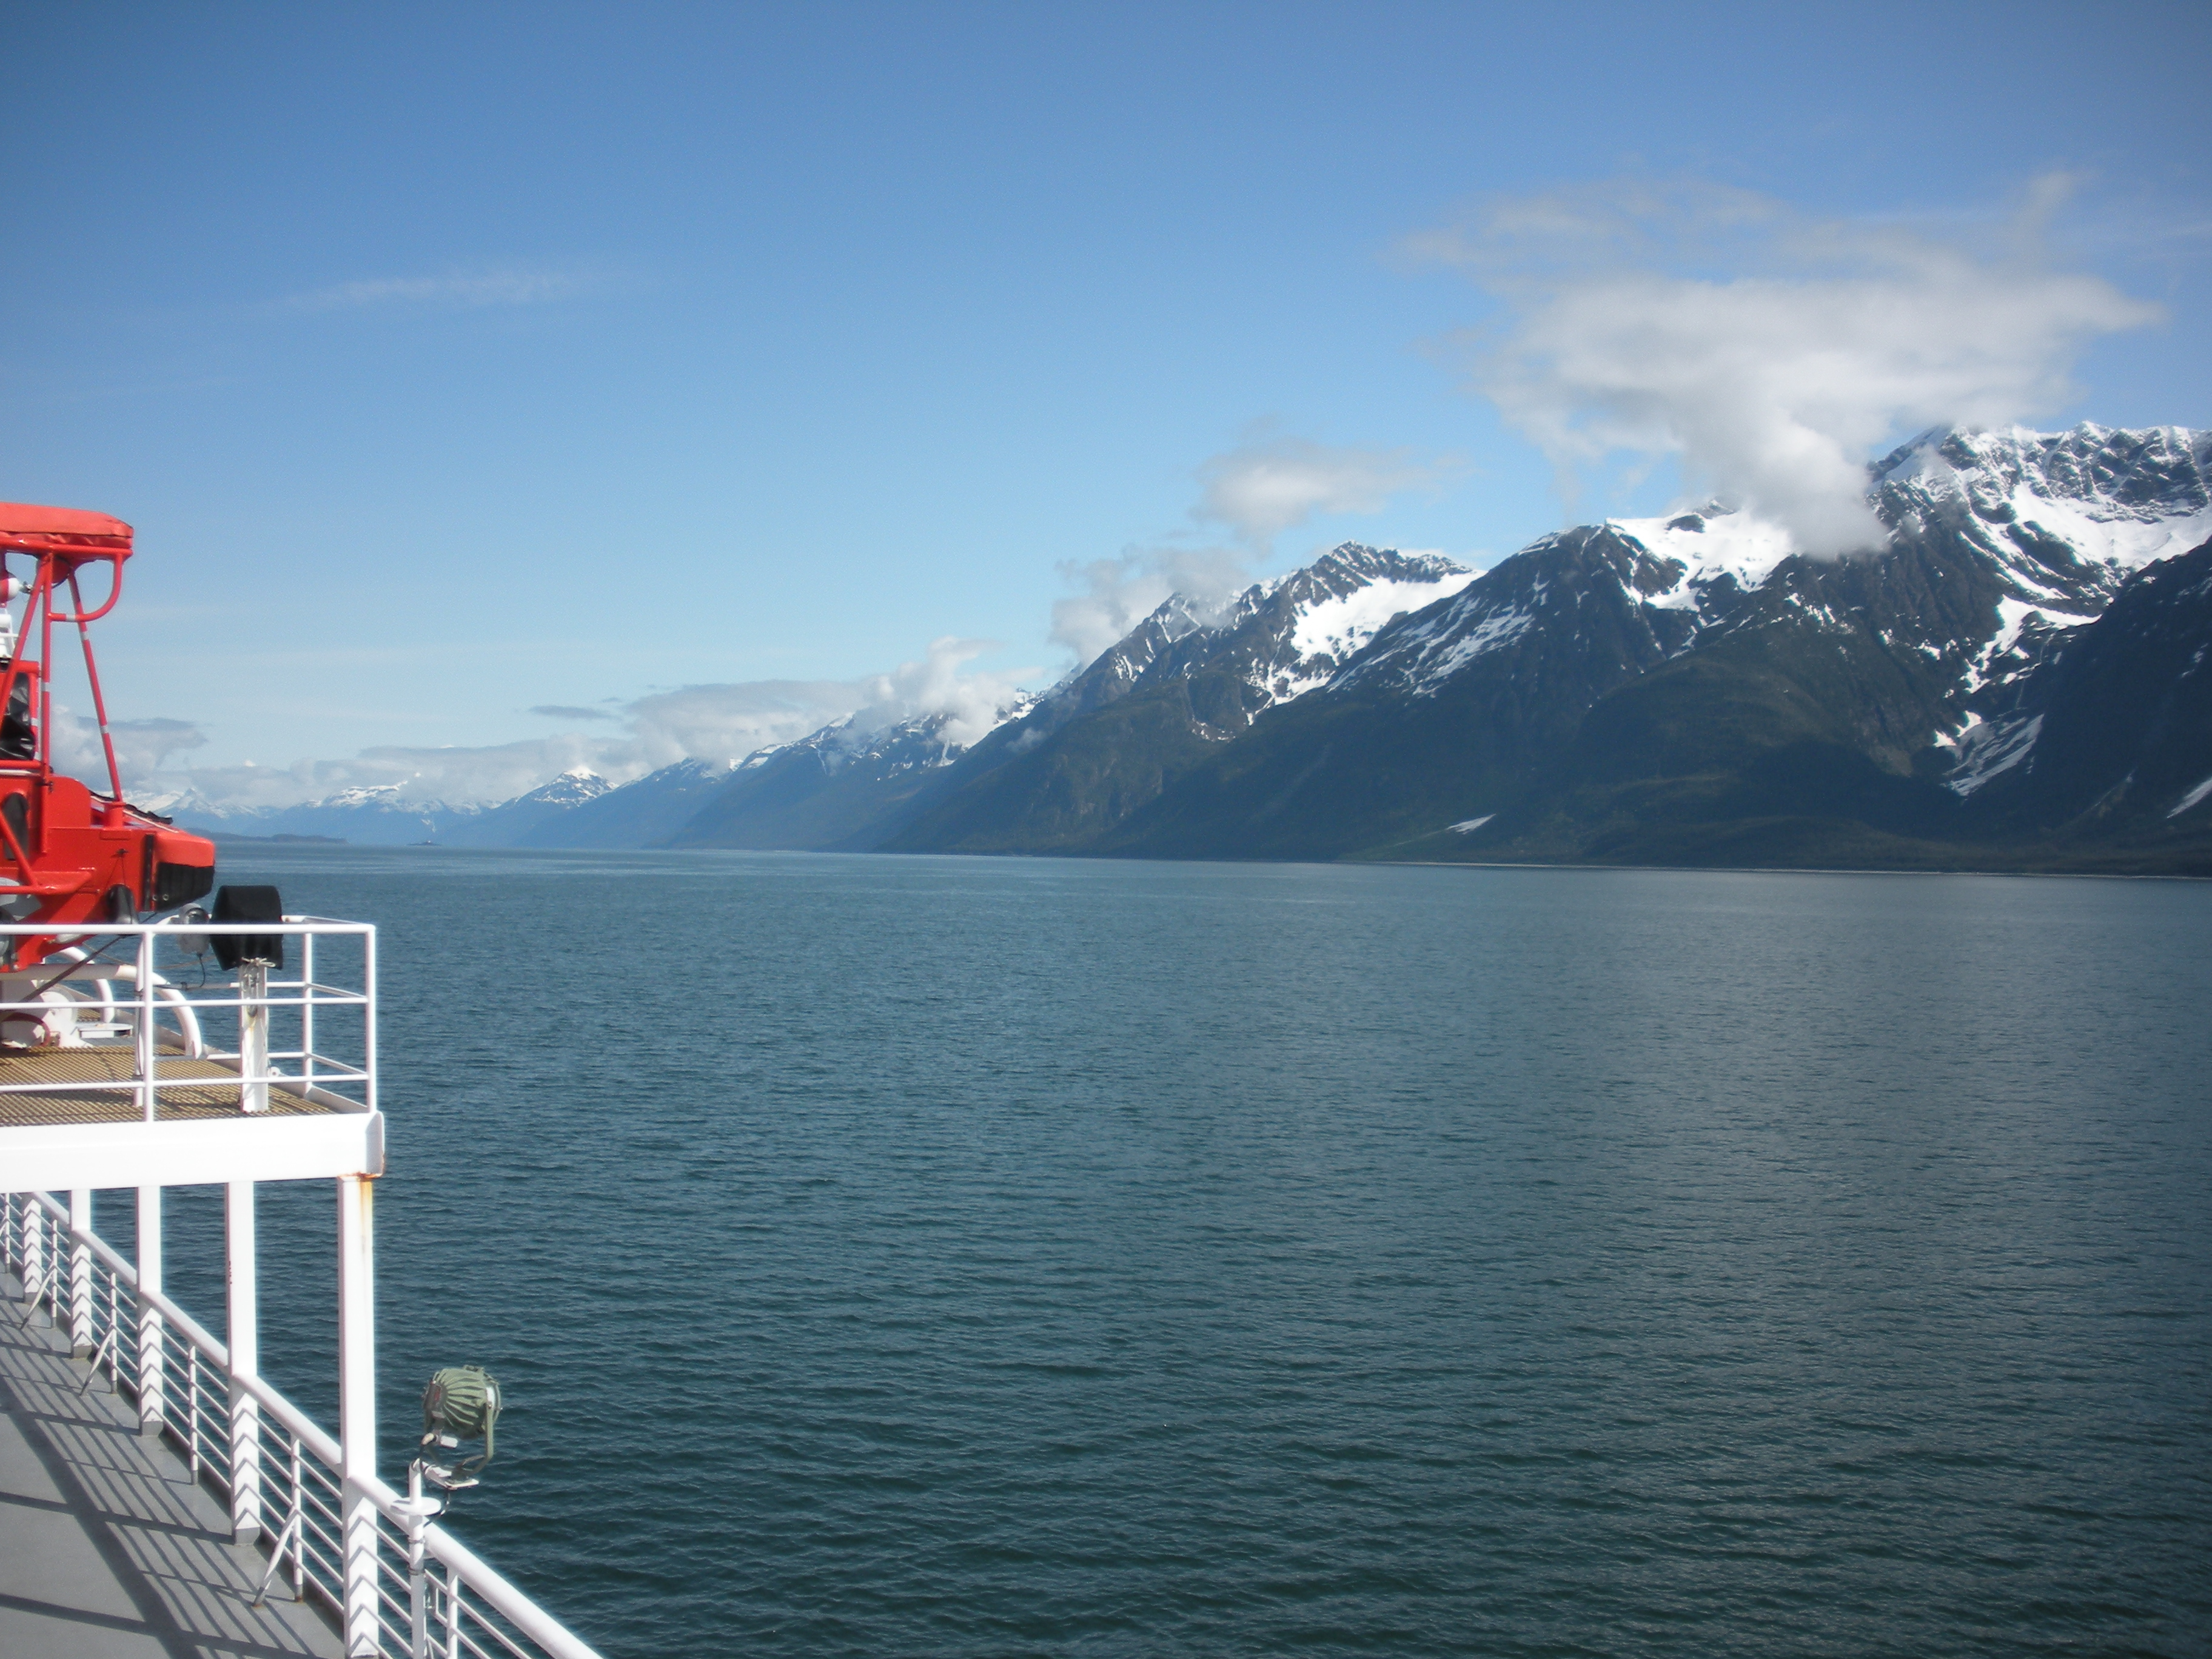 [Photo 4] A picture I took of the Lynn Canal and the surrounding mountains during our ferry ride from Juneau to Skagway